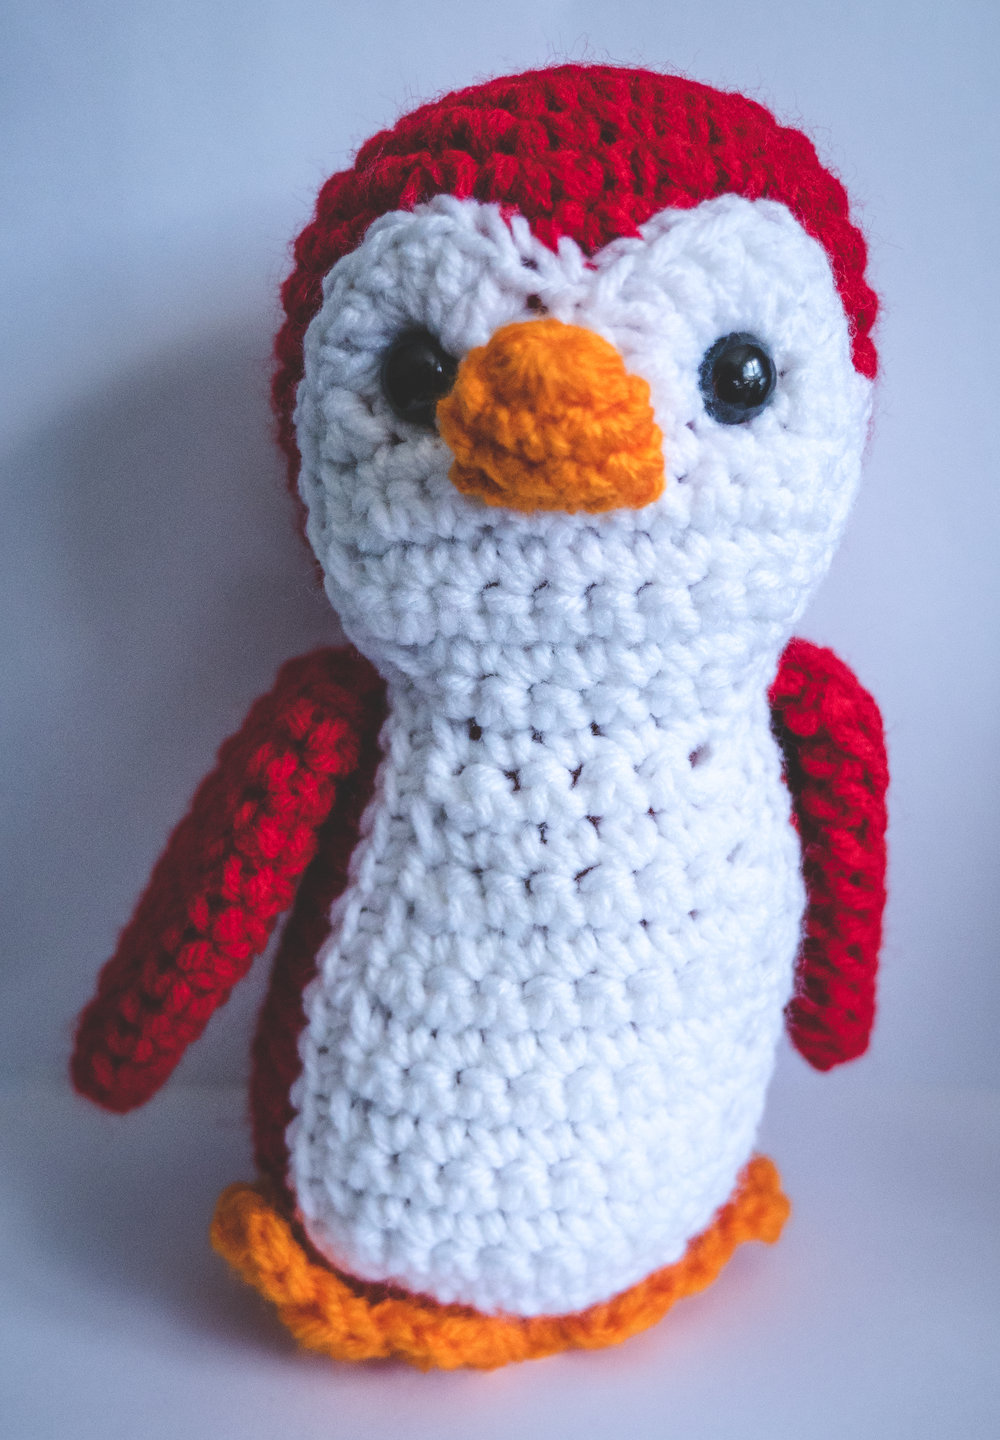 HI! YOU FOUND ME - Hurry and post a screen shot to the More Than Just Me Group Page and tag three people who love the color red and add a penguin GIF in your comments!Big Red Penguin #penguinhunter***One Available***DON'T FORGET TO TAG TOMMY DANGER